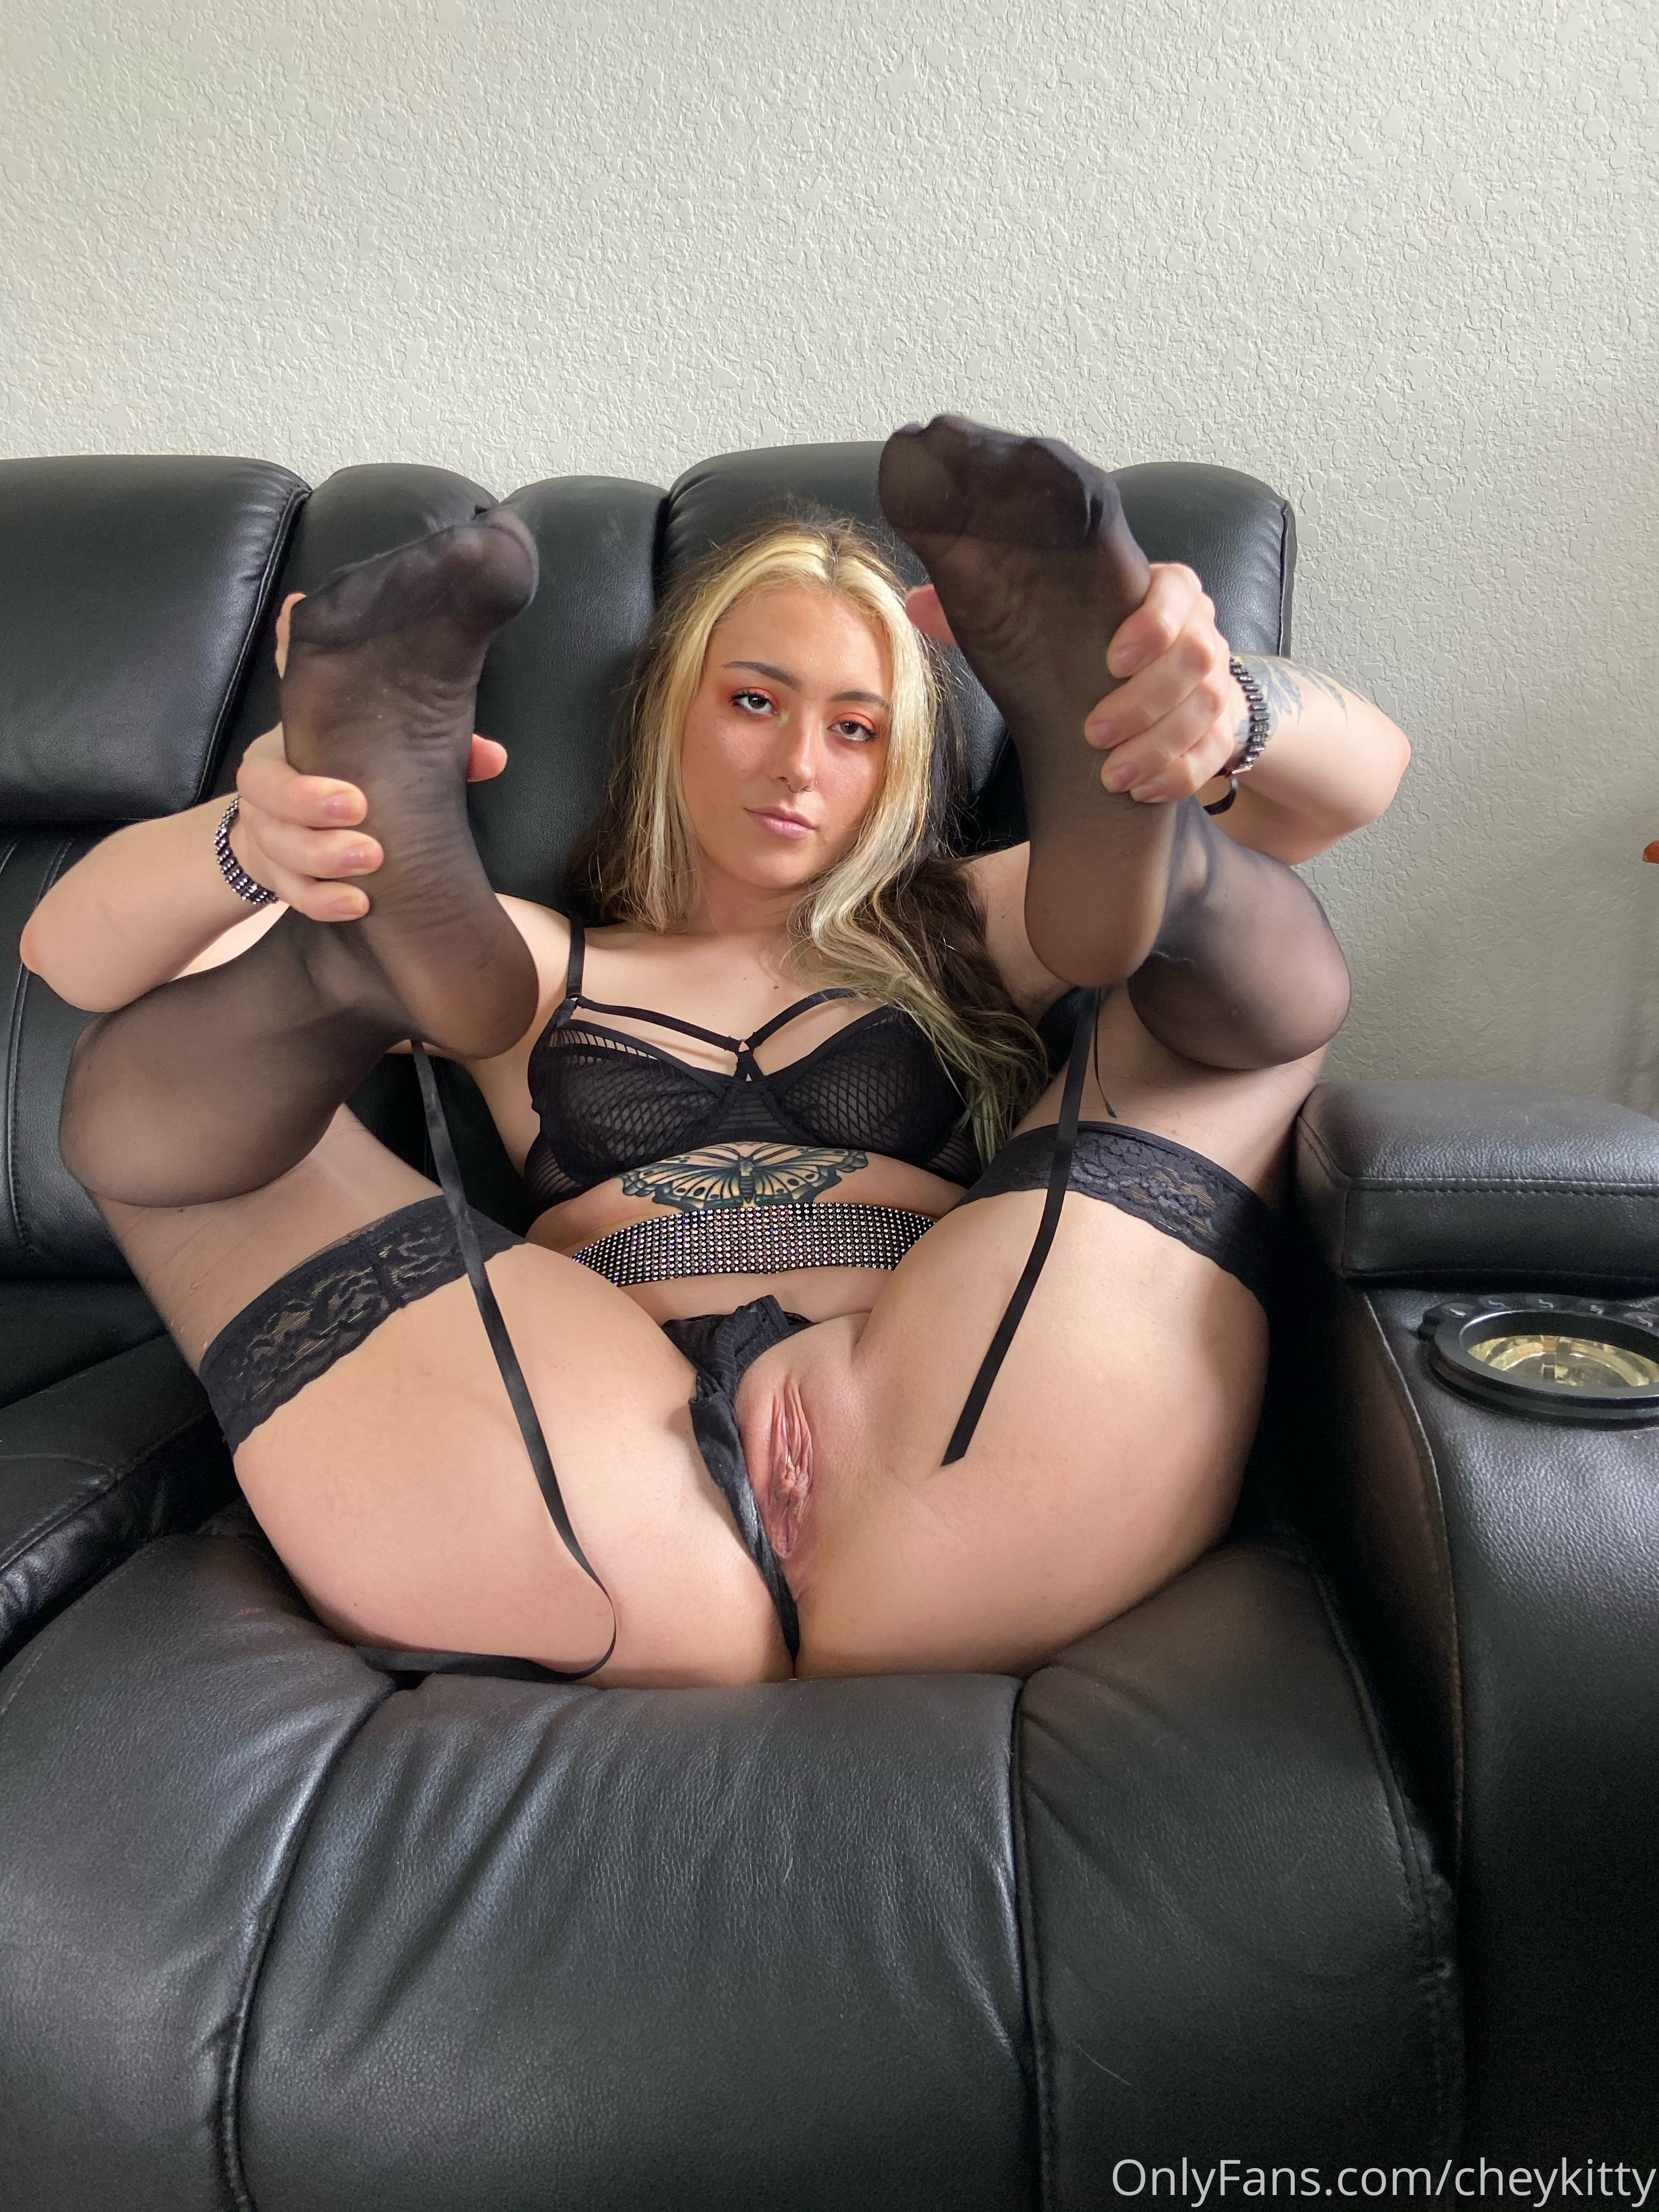 Cheykitty Onlyfans Leaked 0014